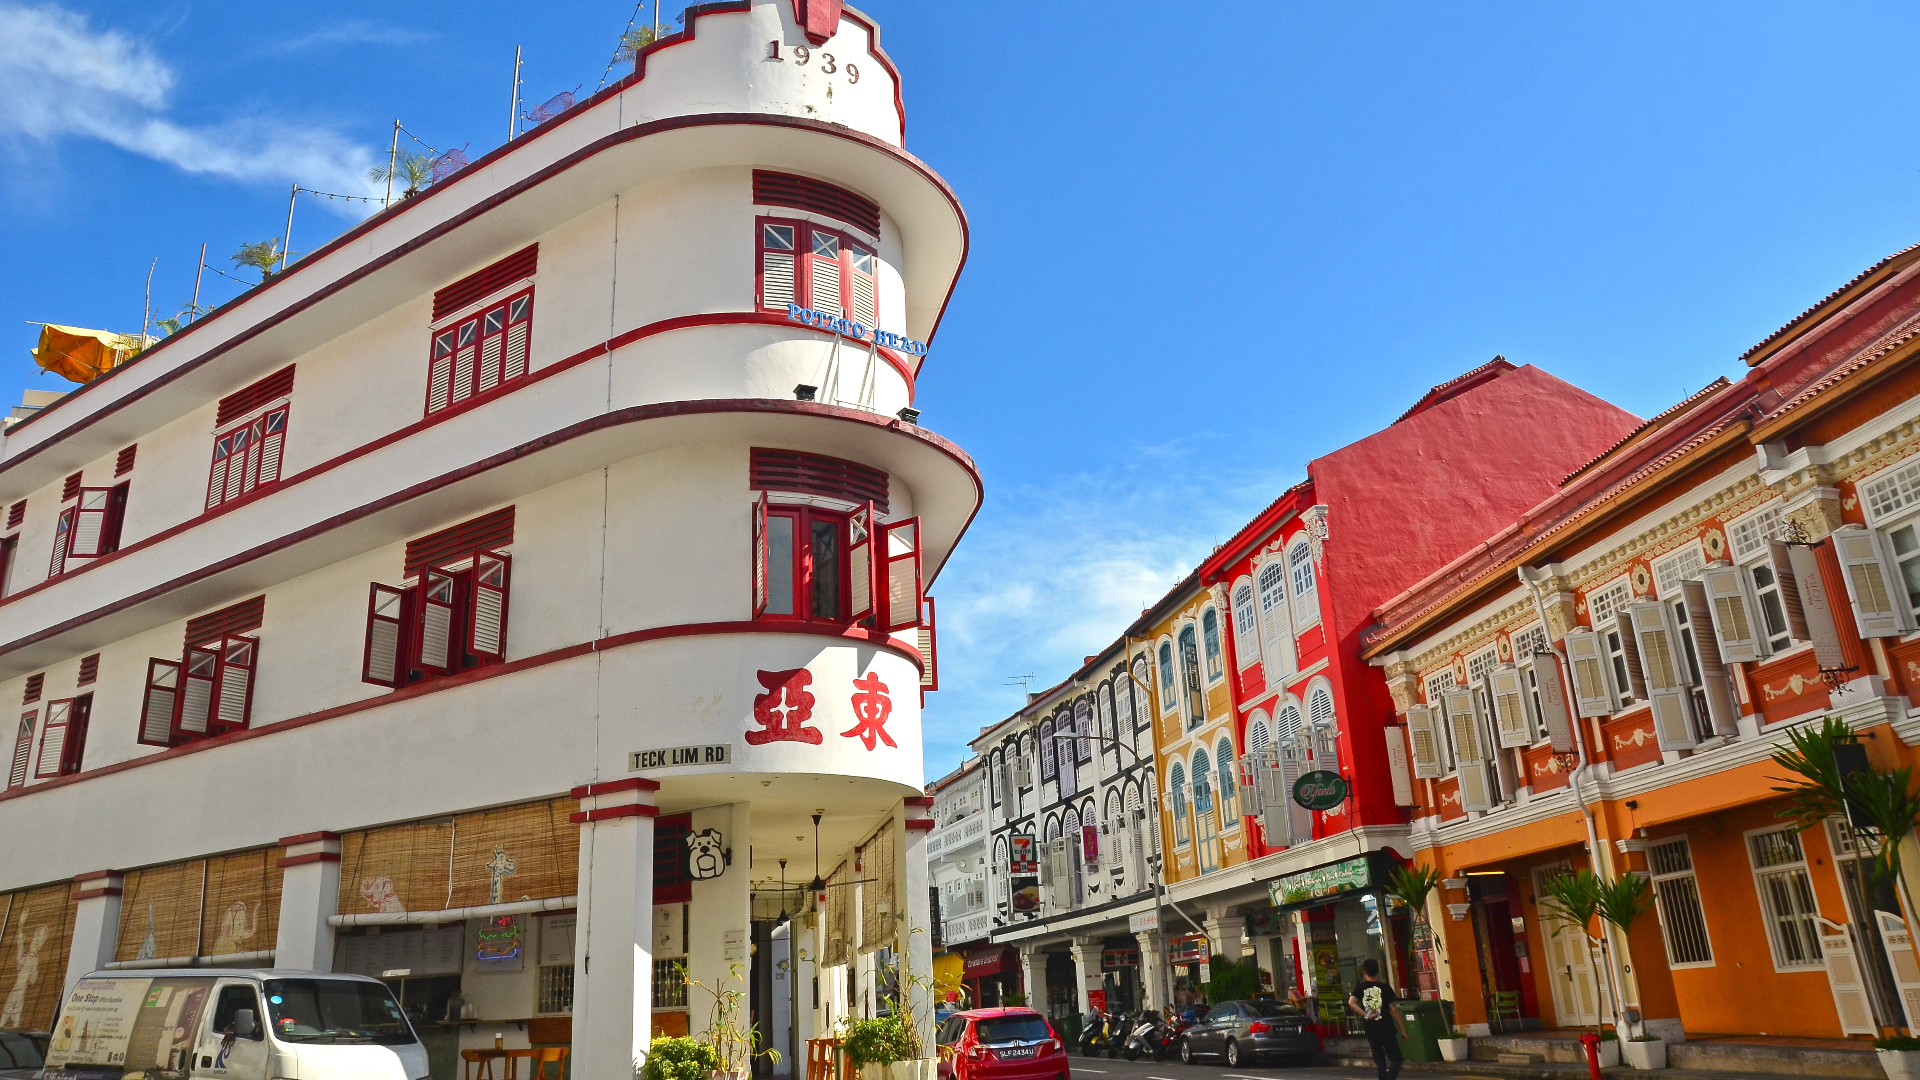 Best Alternative Things To Do In Singapore-Visit Colorful Heritage Shophouses On The East Coast Road